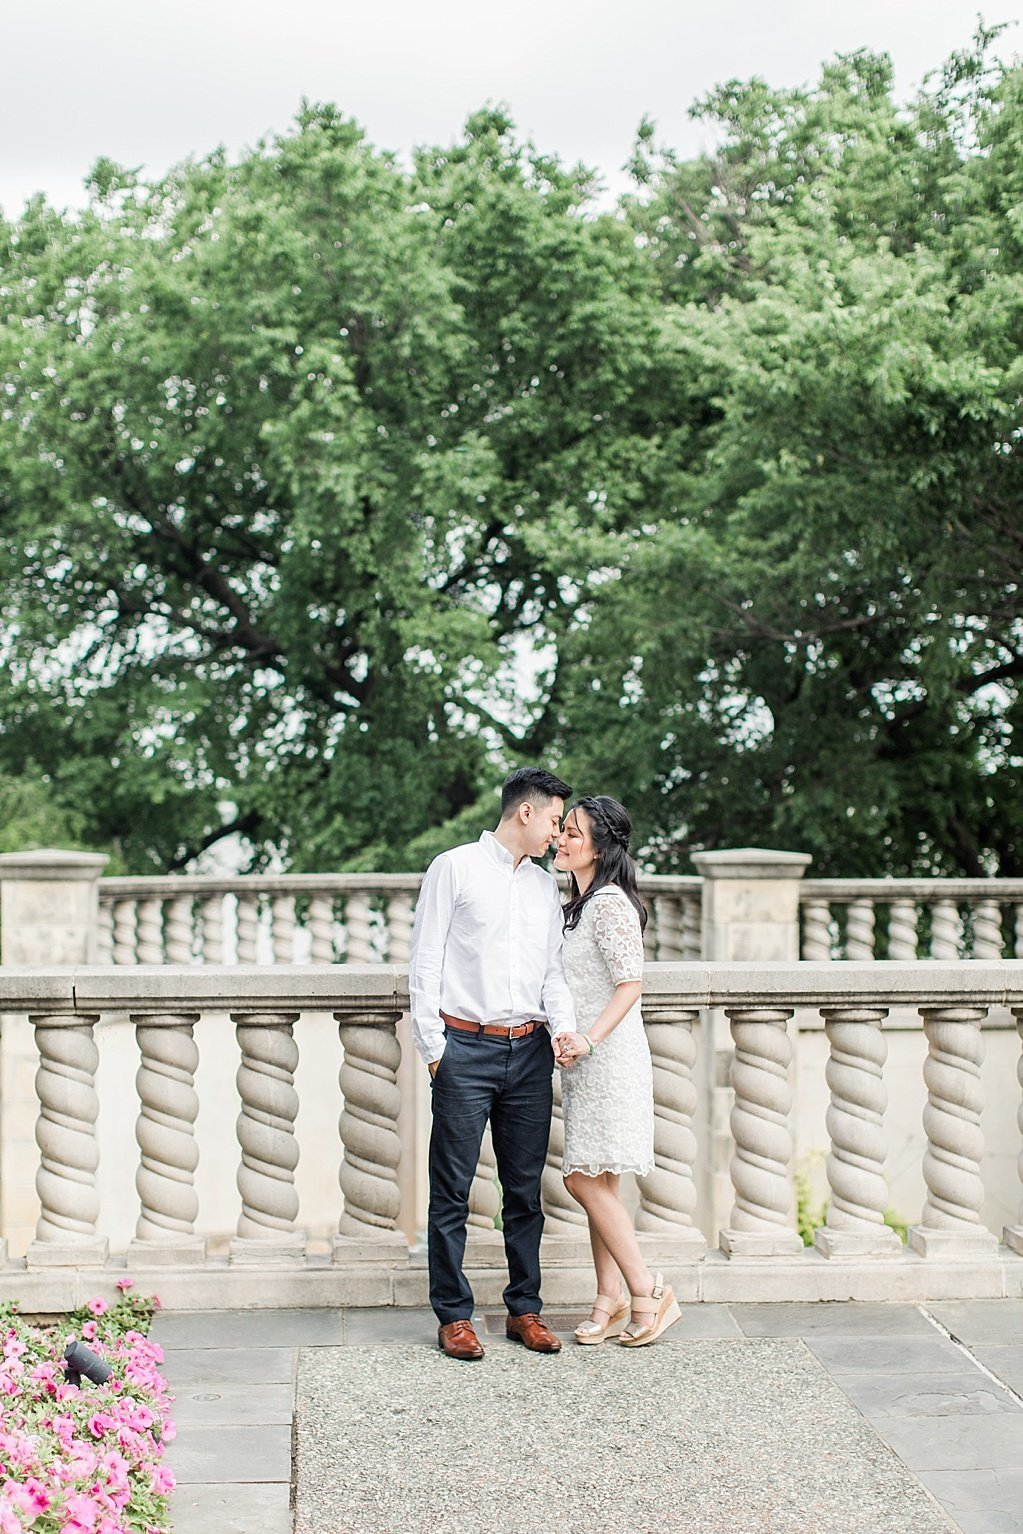 An Elegant Spring Engagement Session at the Dallas Arboretum and Botanical Gardens  by Allison Jeffers Wedding Photography_0053